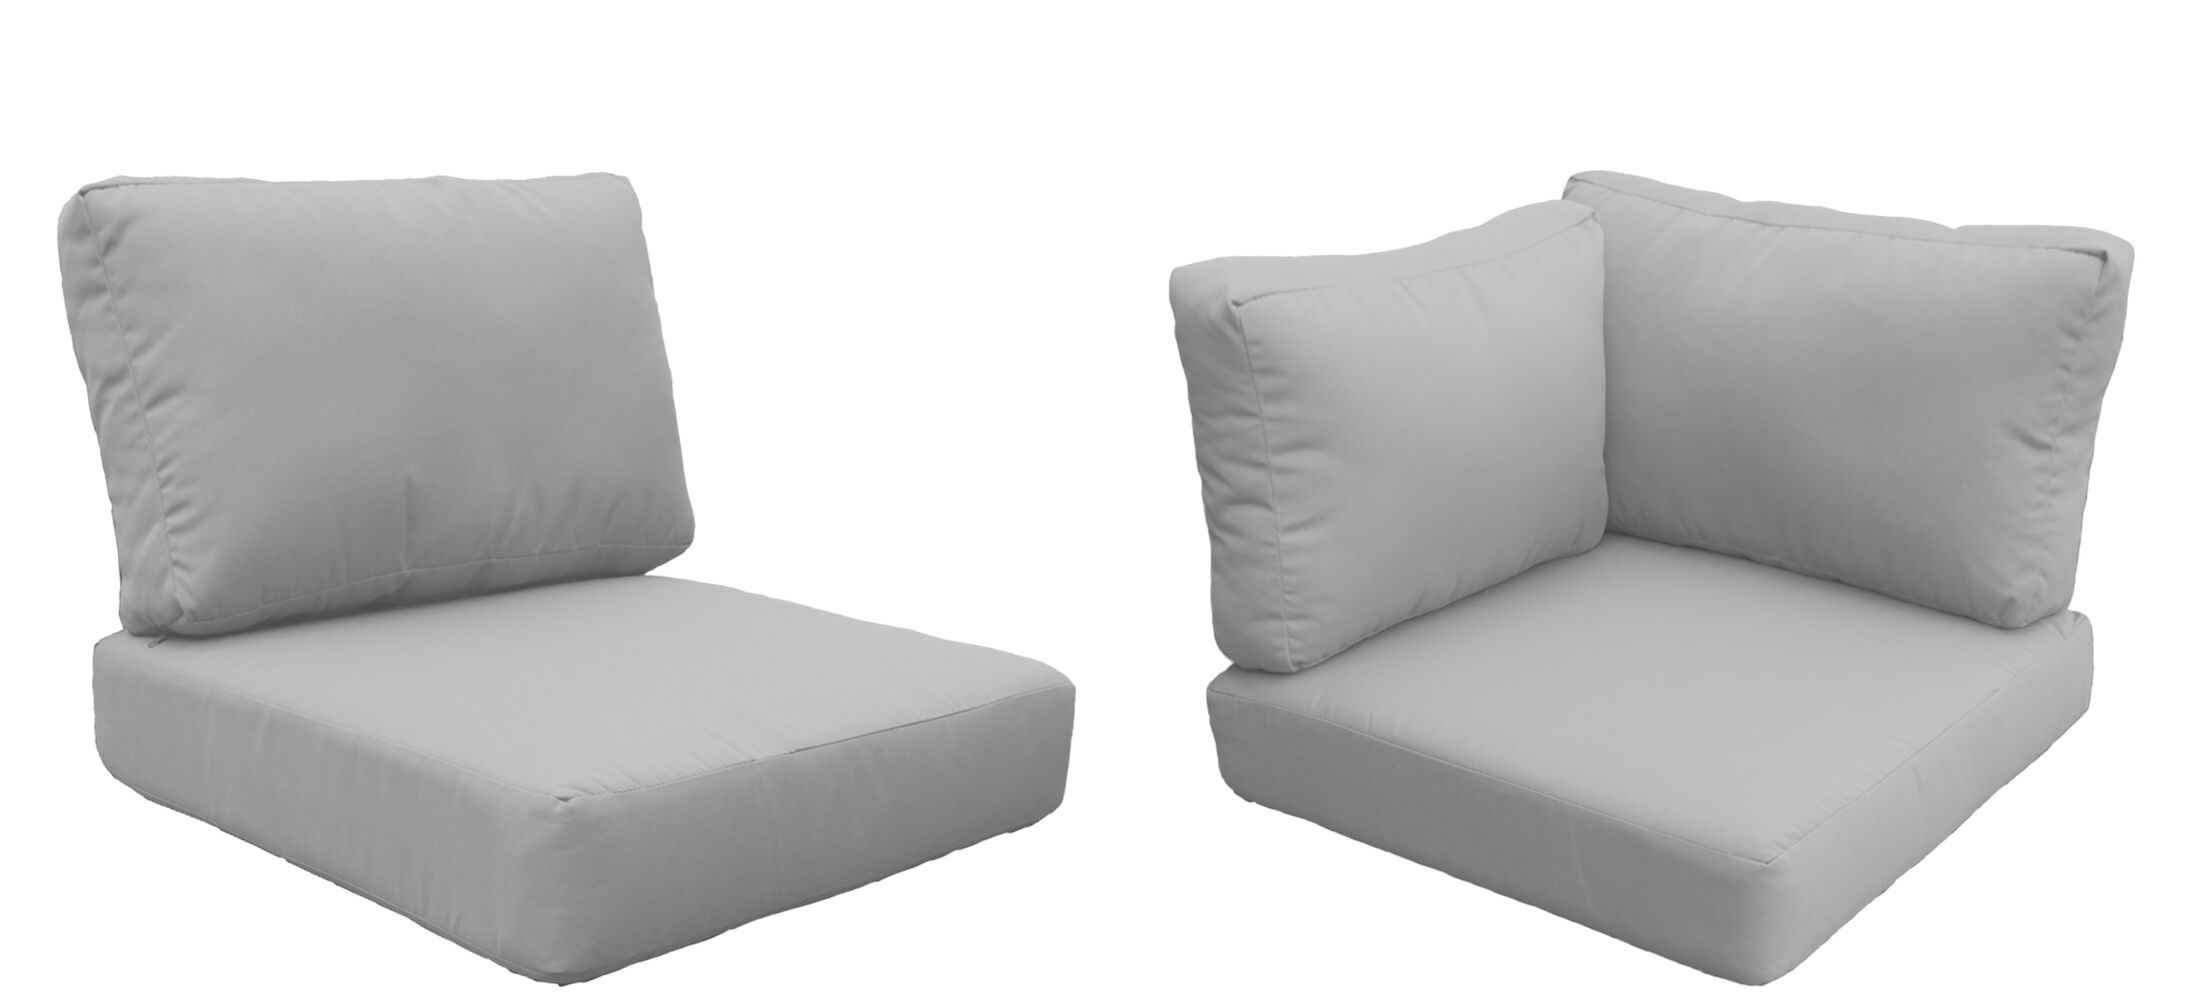 Eldredge Outdoor 14 Piece Lounge Chair Cushion Set Fabric: Gray